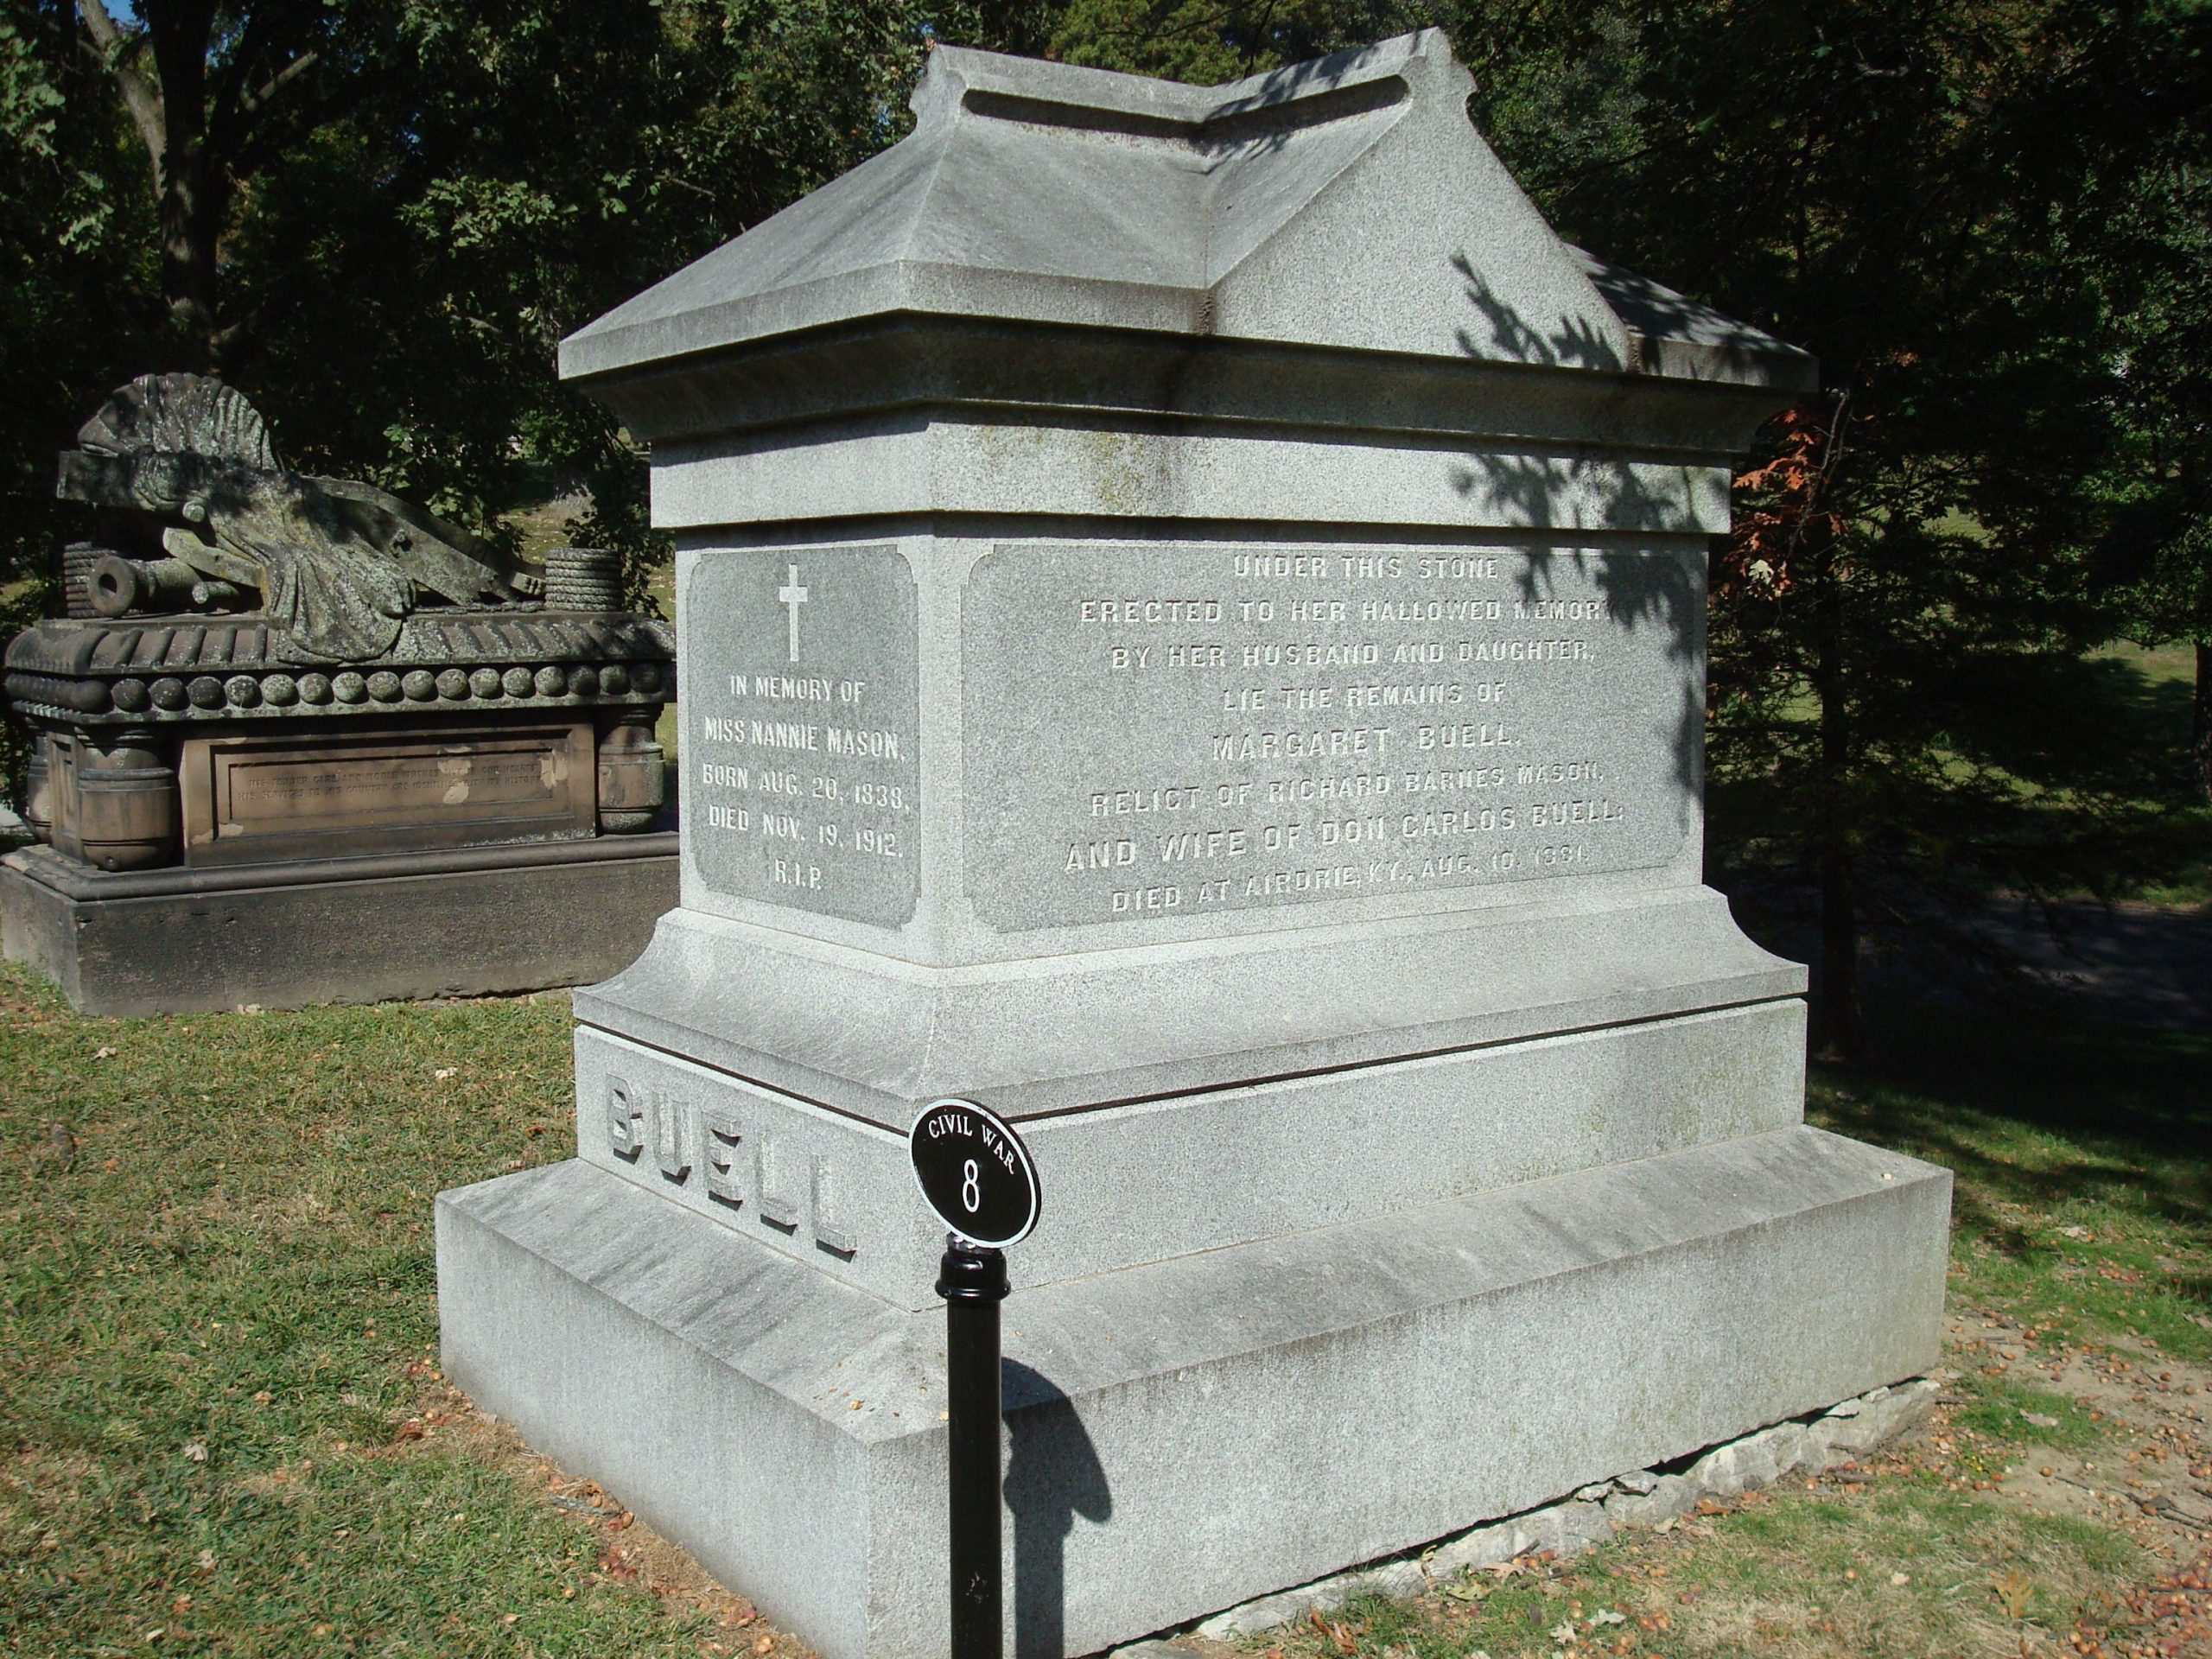 Confederate general monument